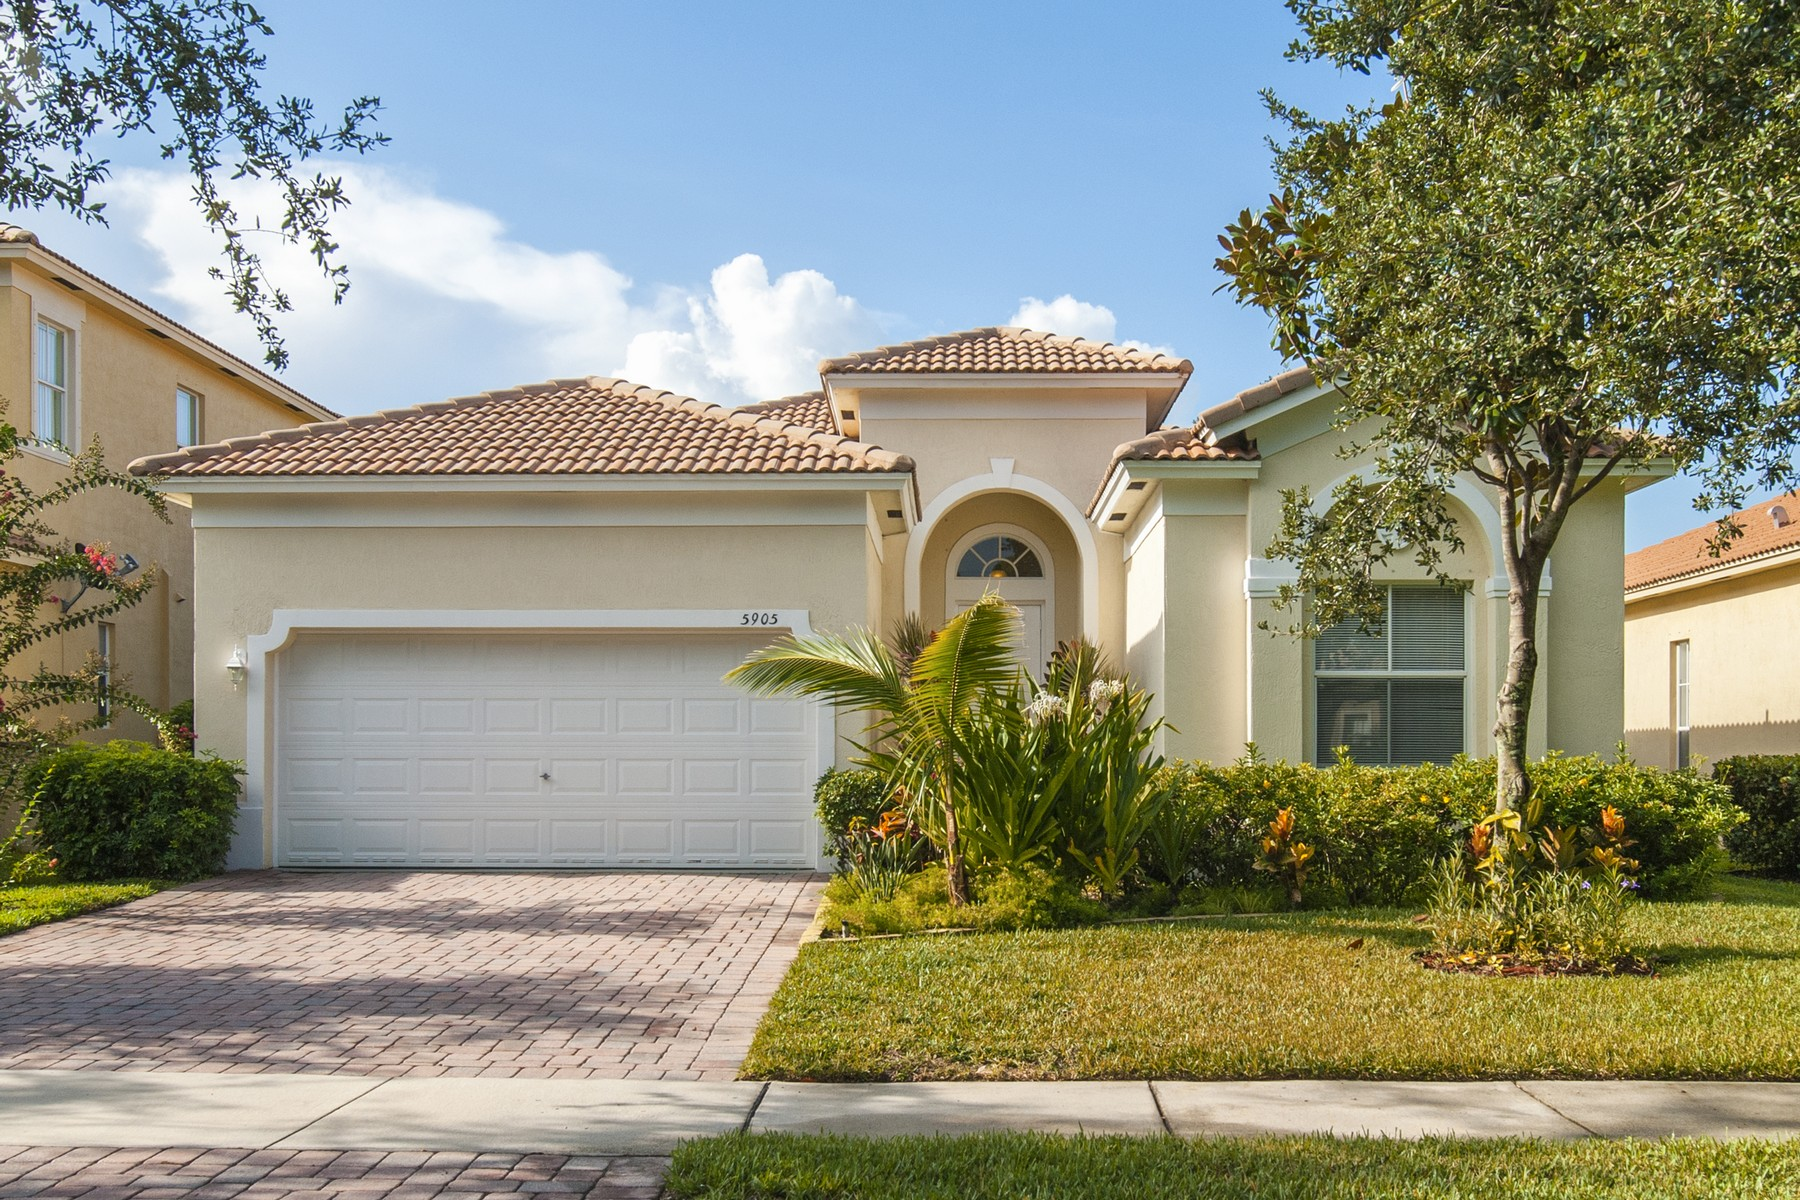 Single Family Homes για την Ενοίκιο στο Beautfully Maintained Home in Resort Style Gated Community 5905 Spring Lake Terrace Fort Pierce, Φλοριντα 34951 Ηνωμένες Πολιτείες